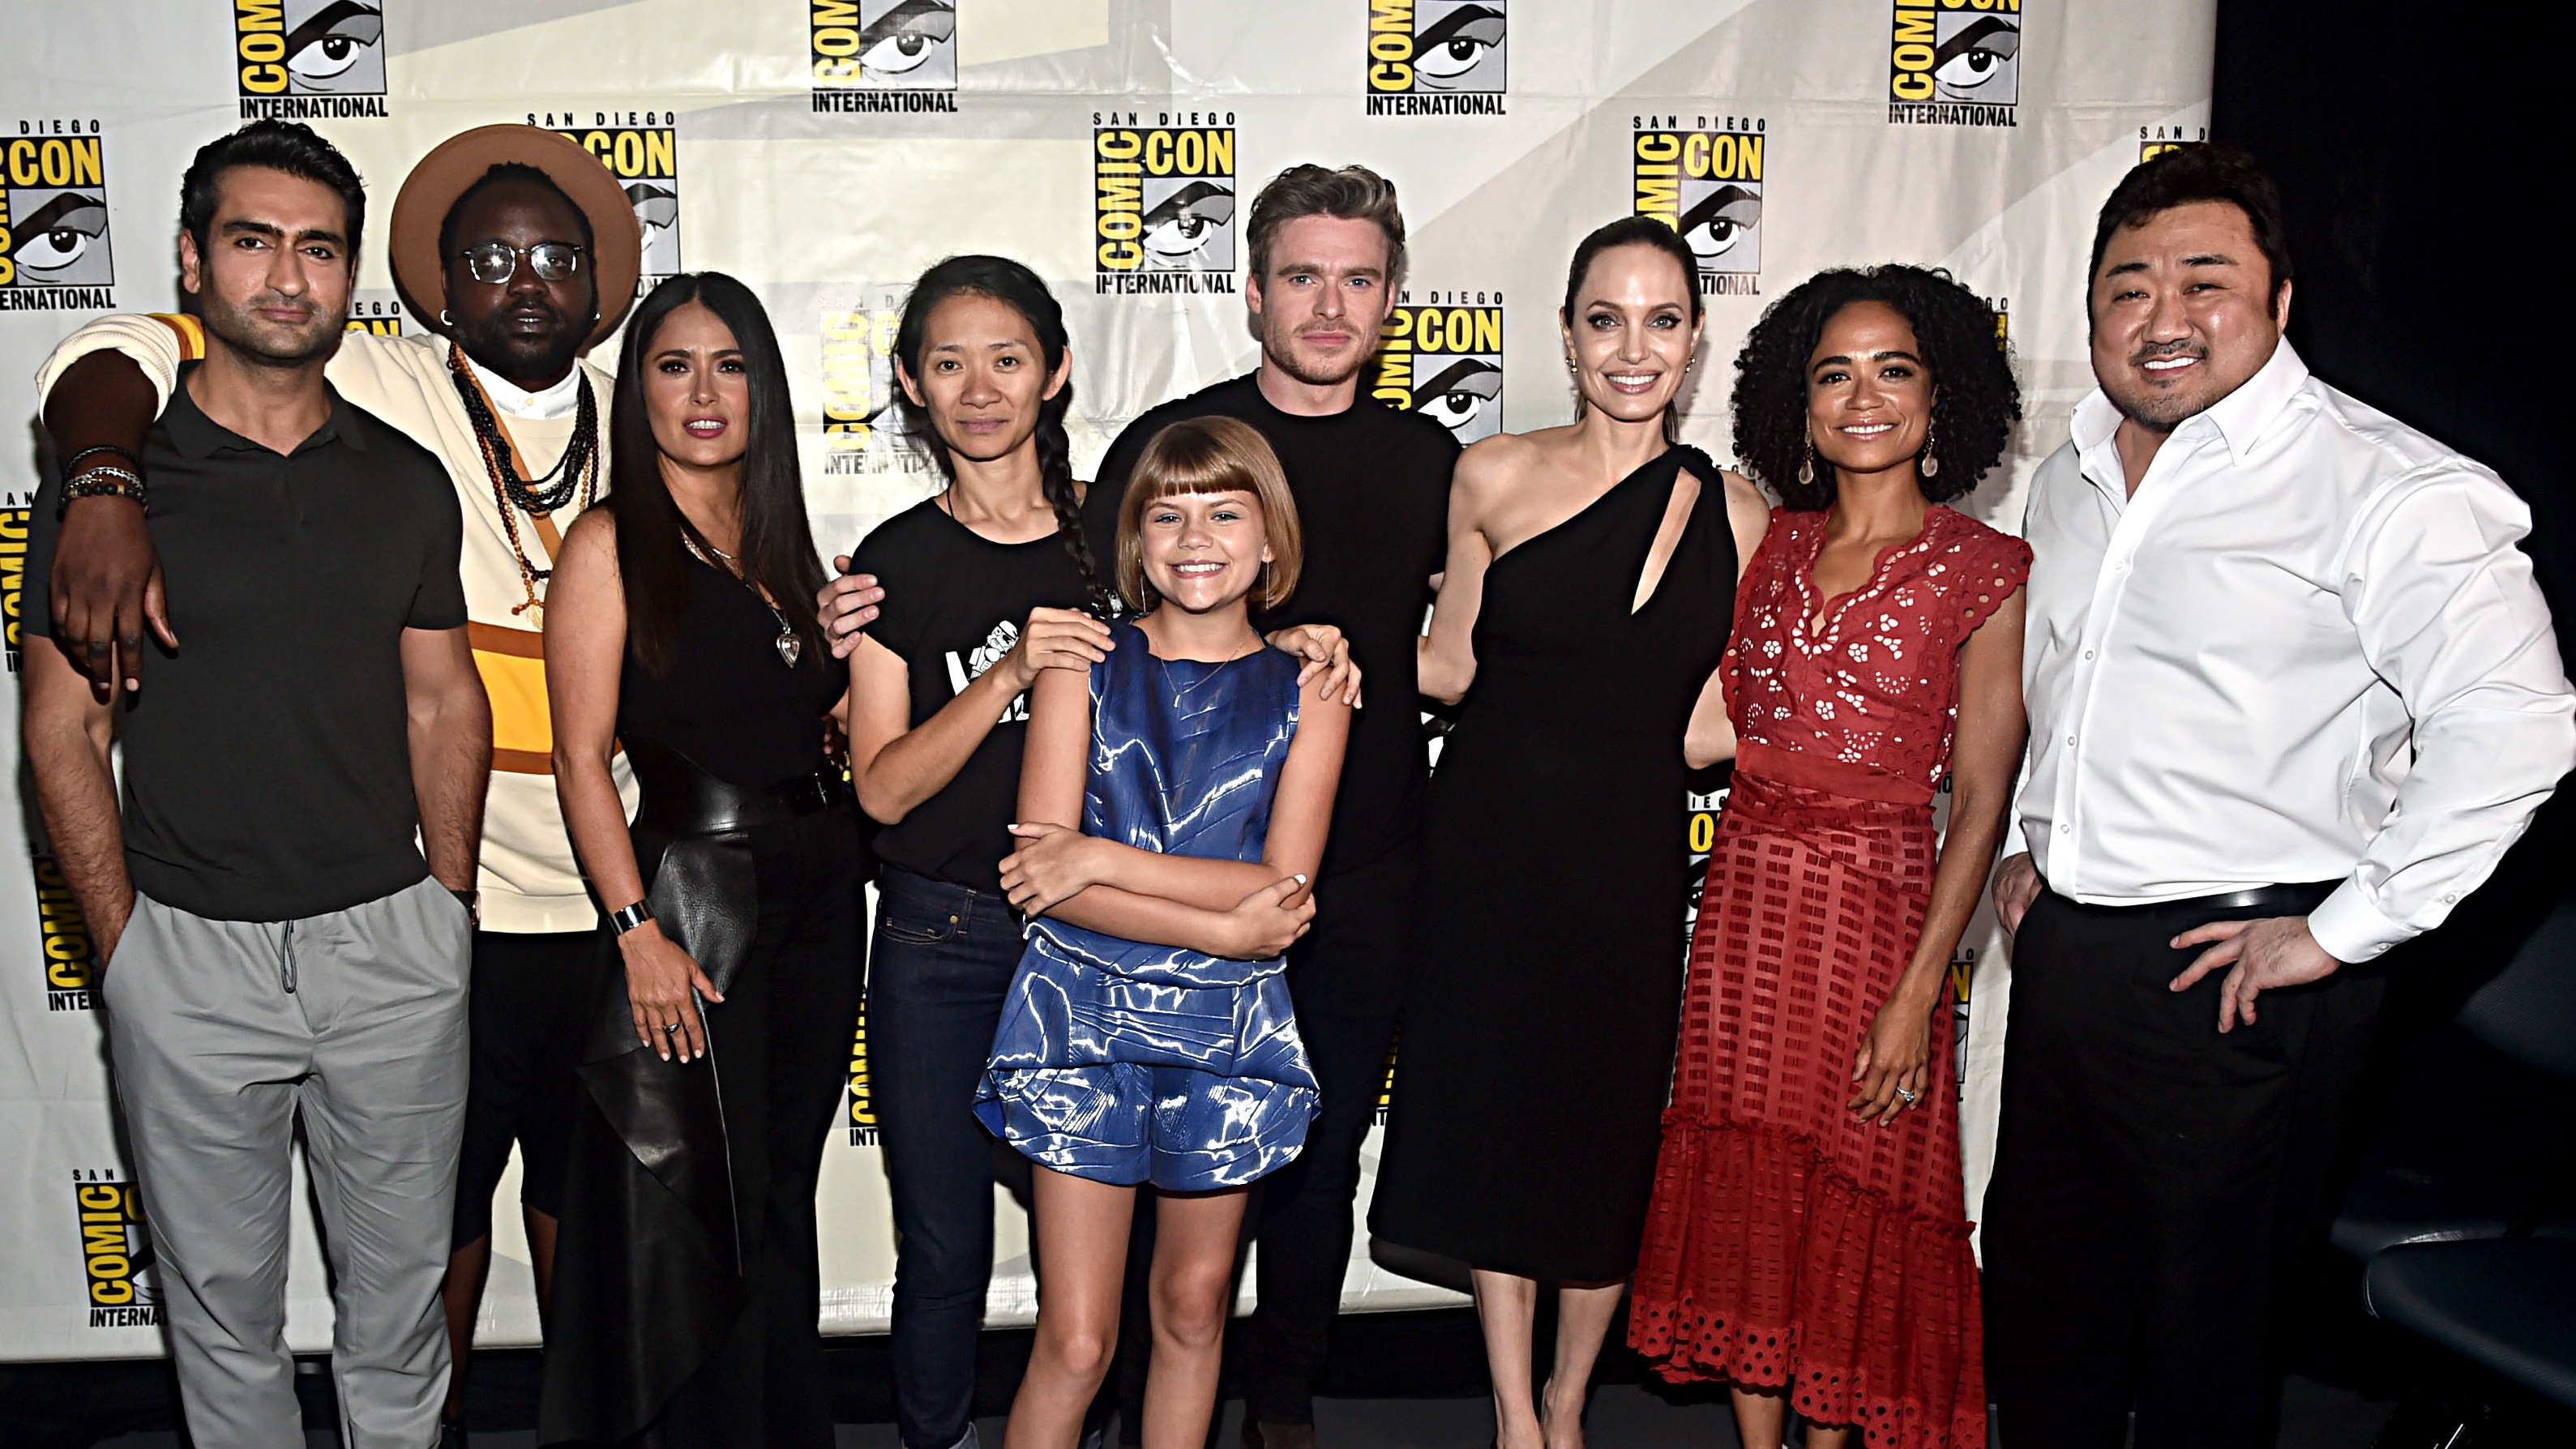 The Eternals Release Date Cast Trailer And More Tom S Guide